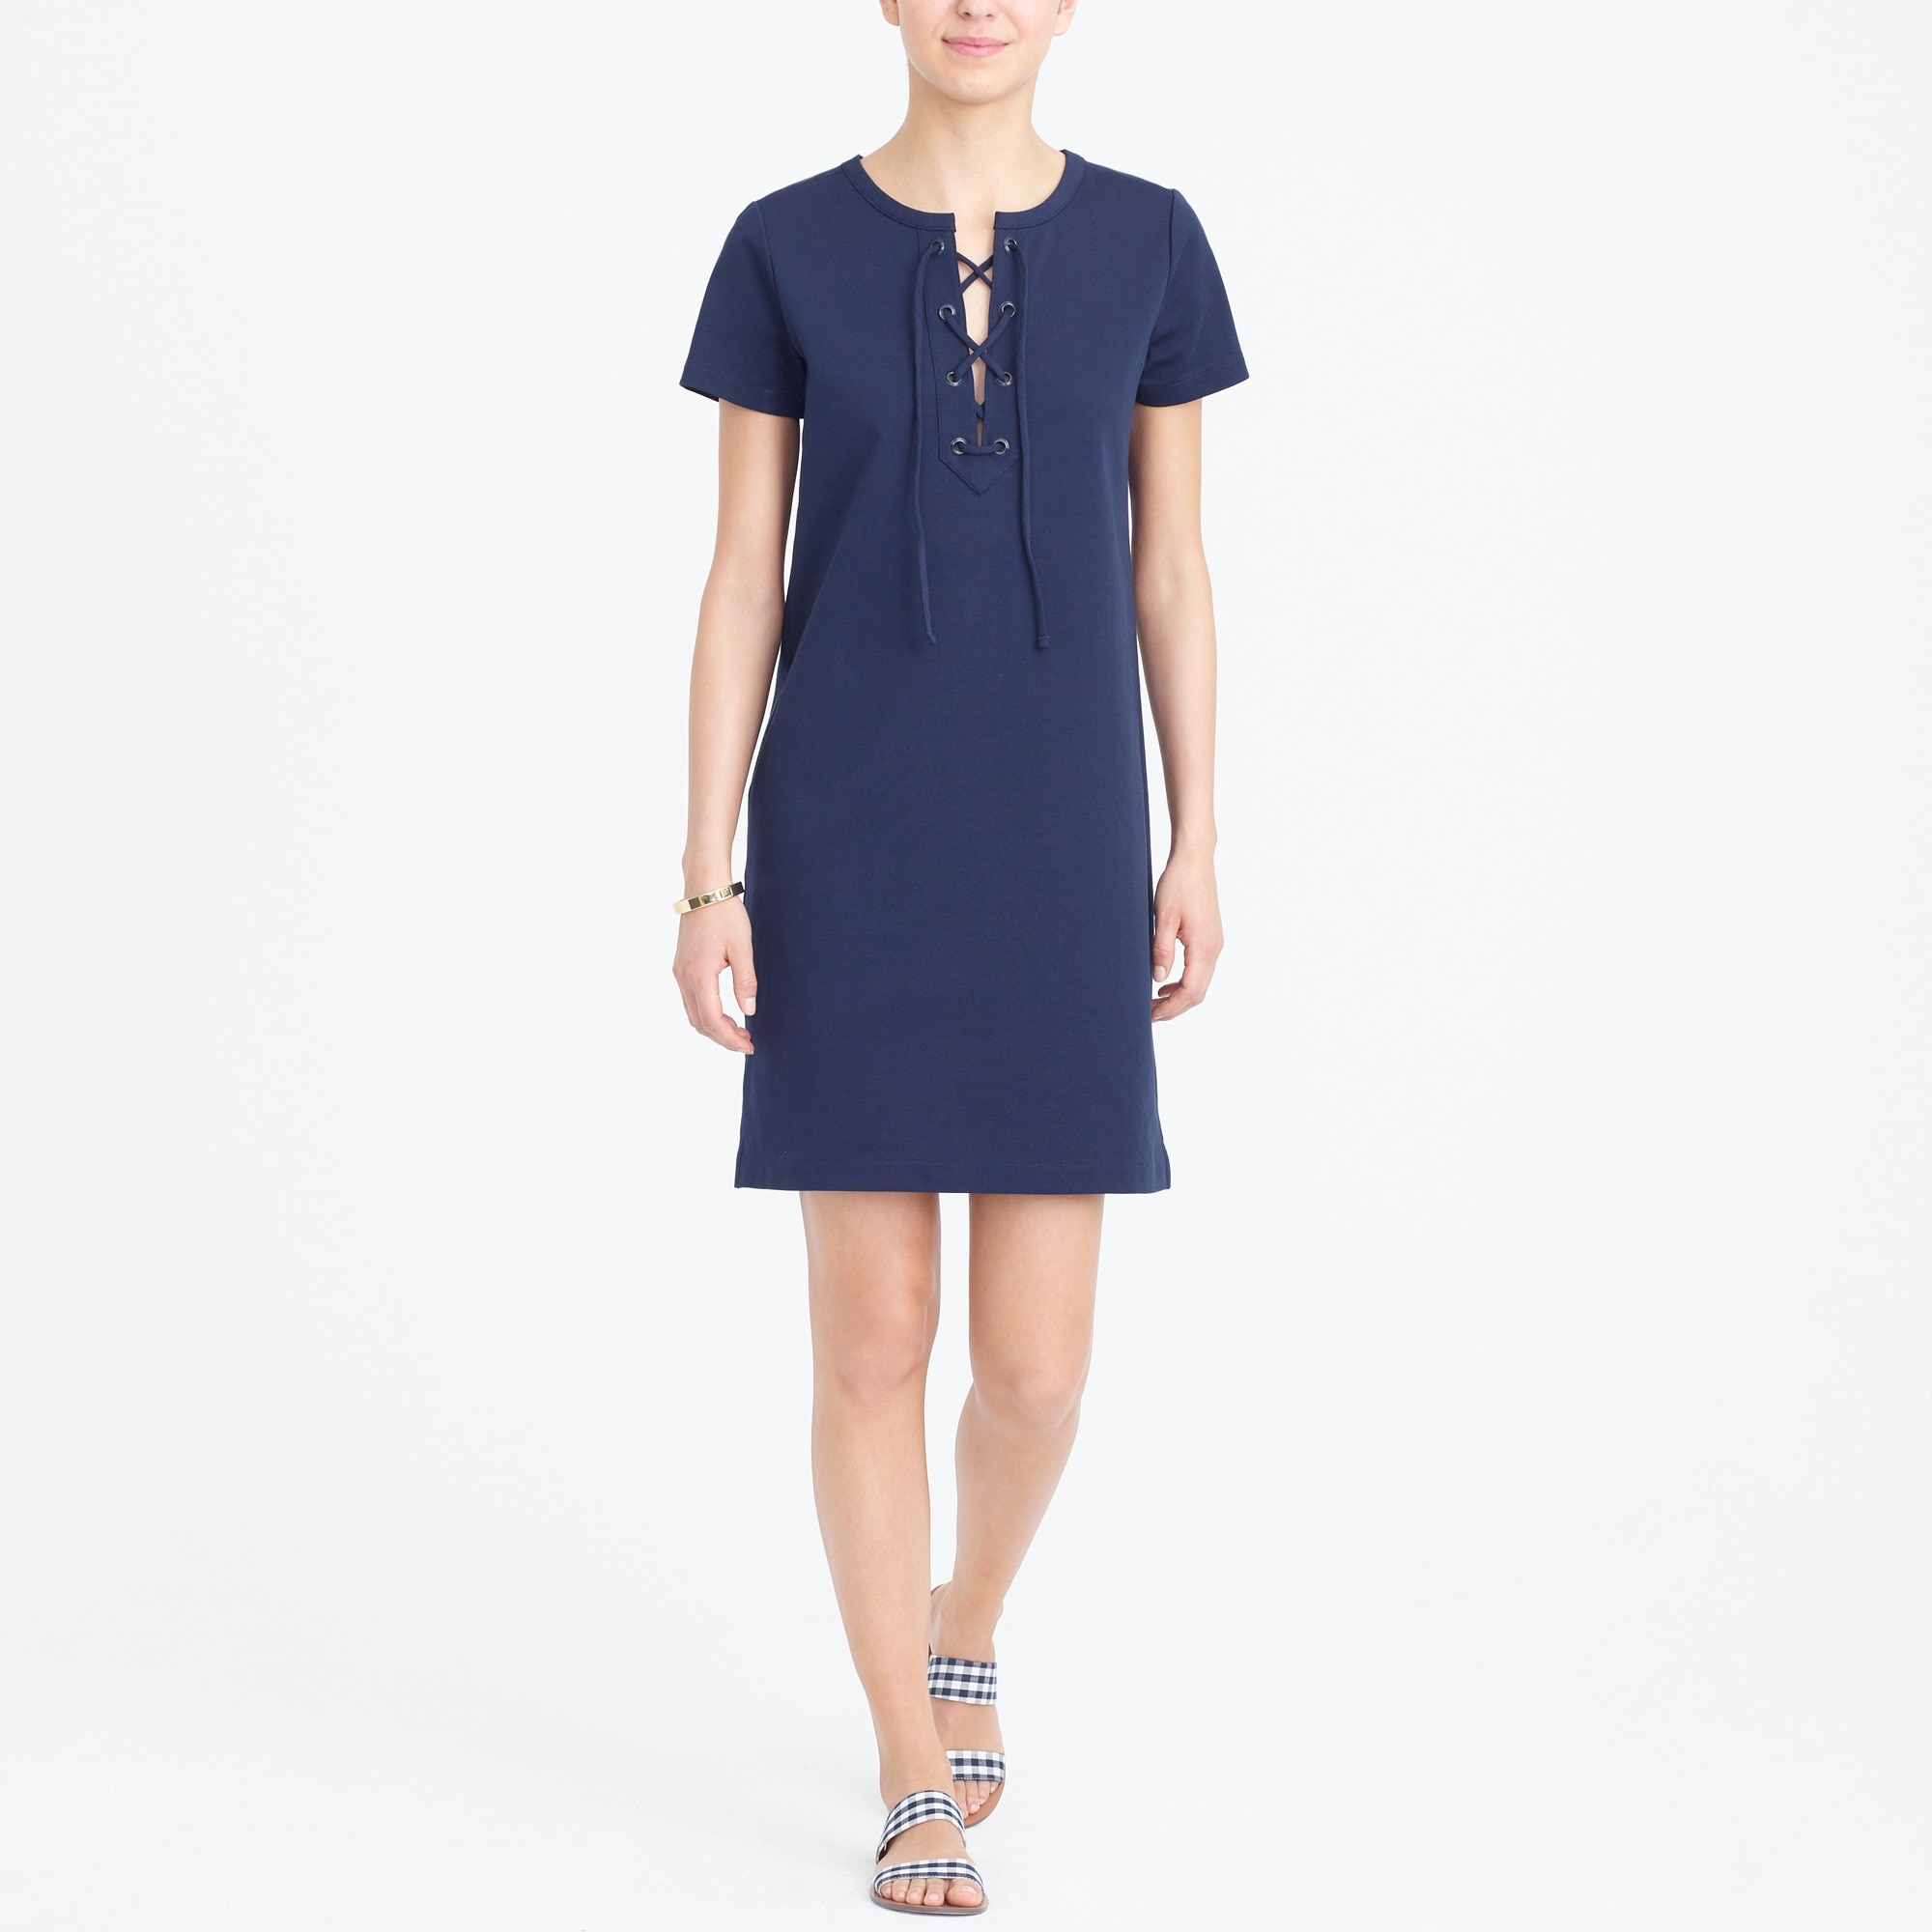 Image 1 for Lace-up knit dress